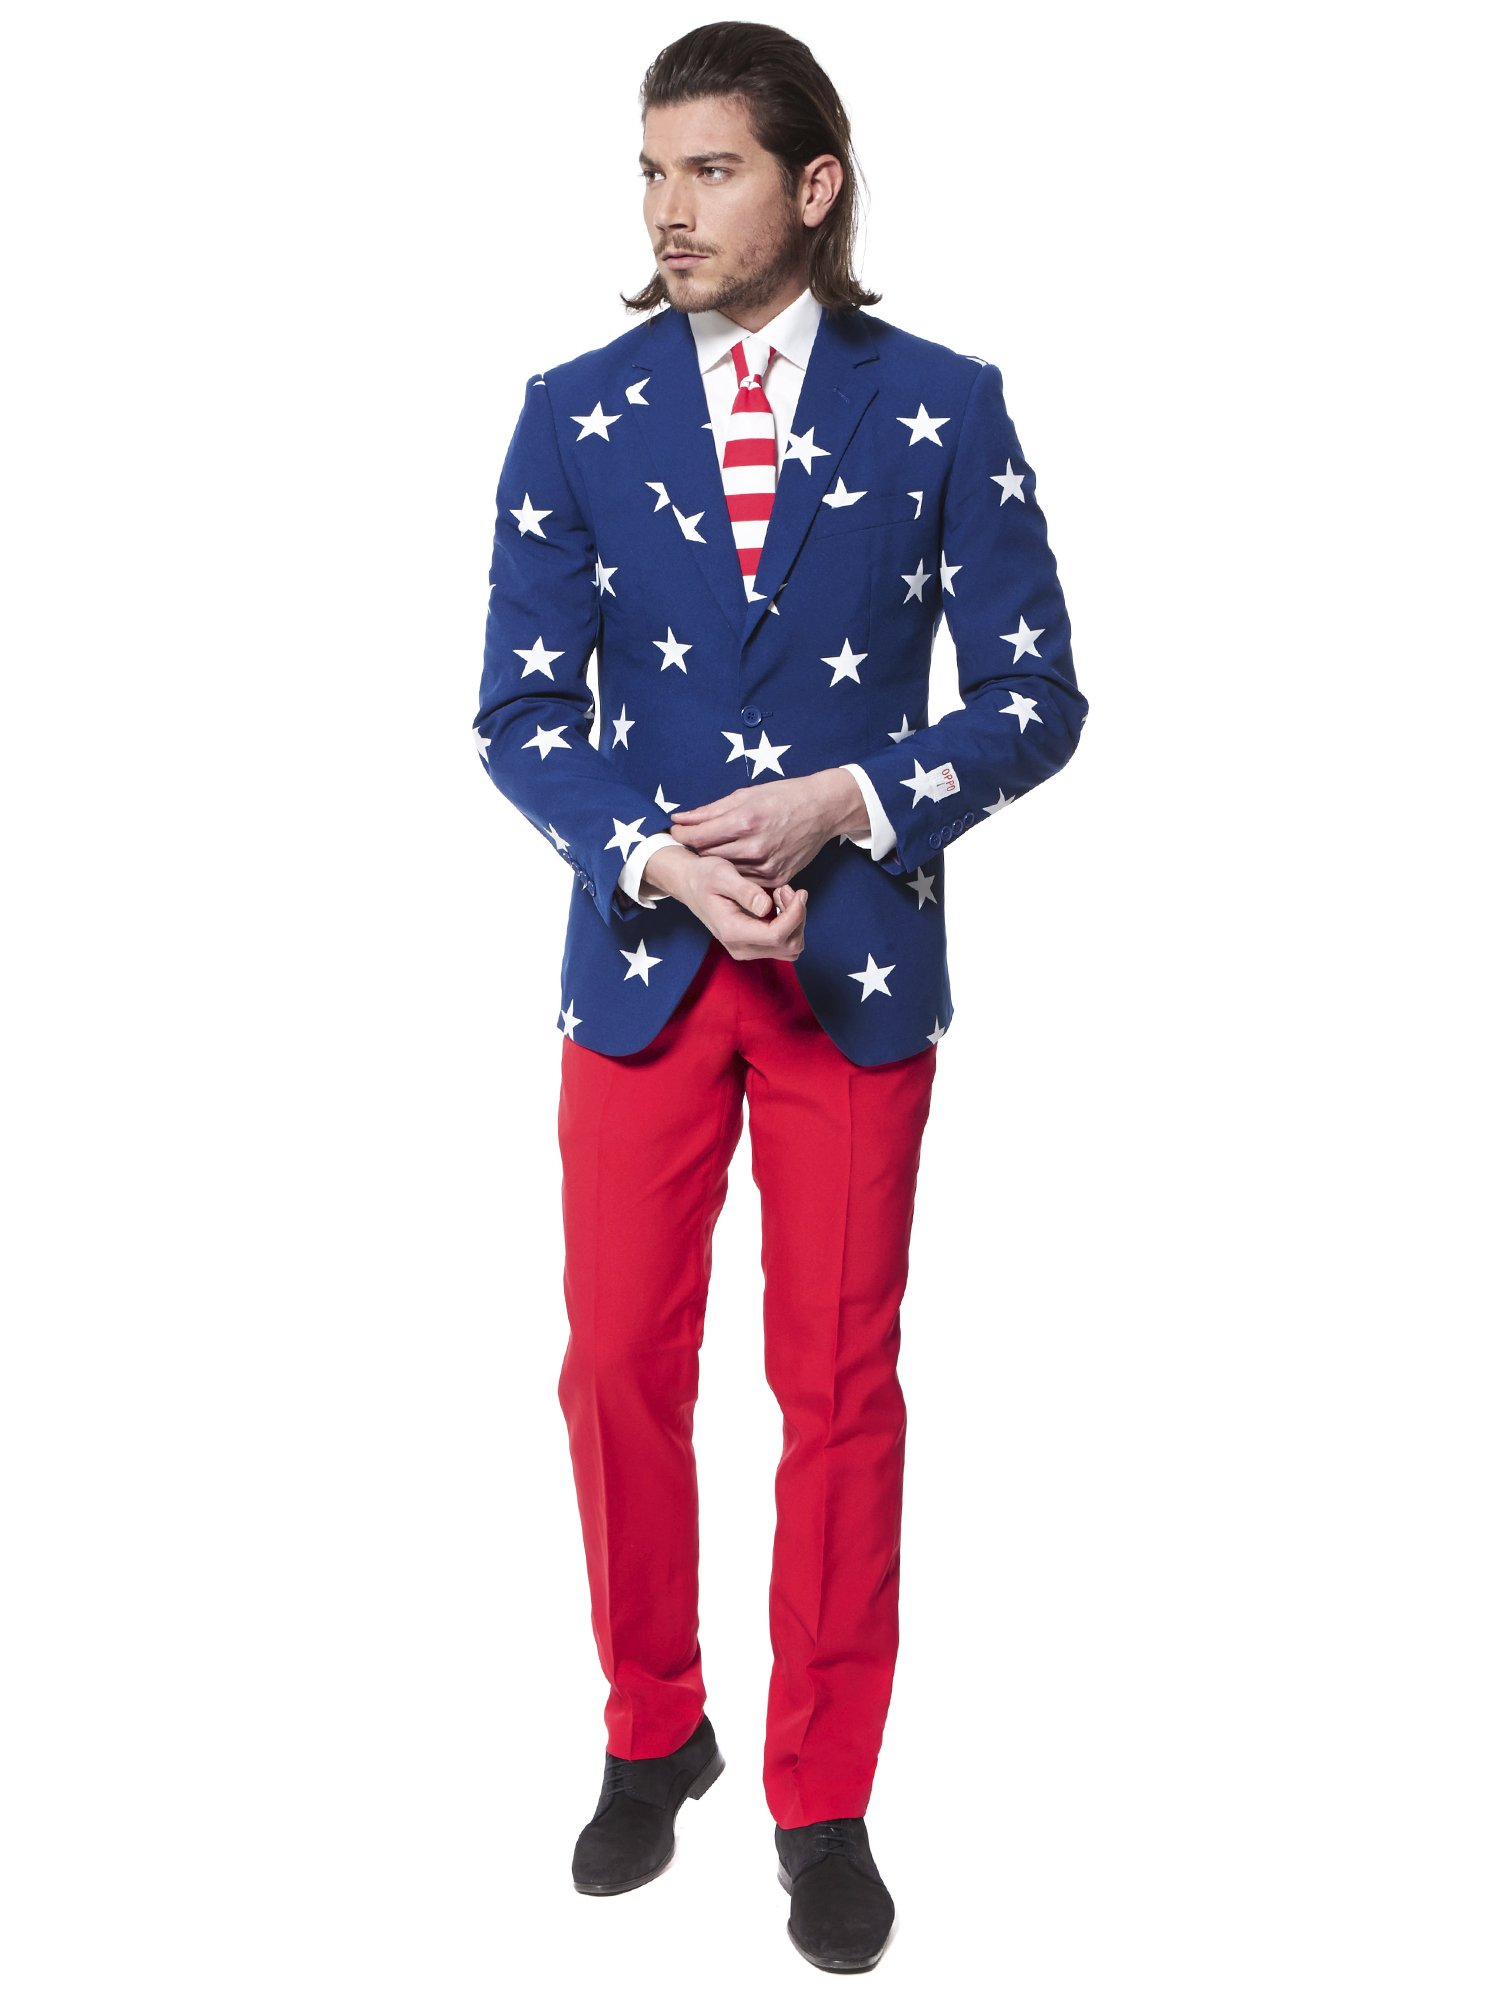 Opposuits Fancy Colored Suit For Men Now With Free Prom King and Prom Queen Sash,Stars and Stripes,US40 by Opposuits (Image #3)